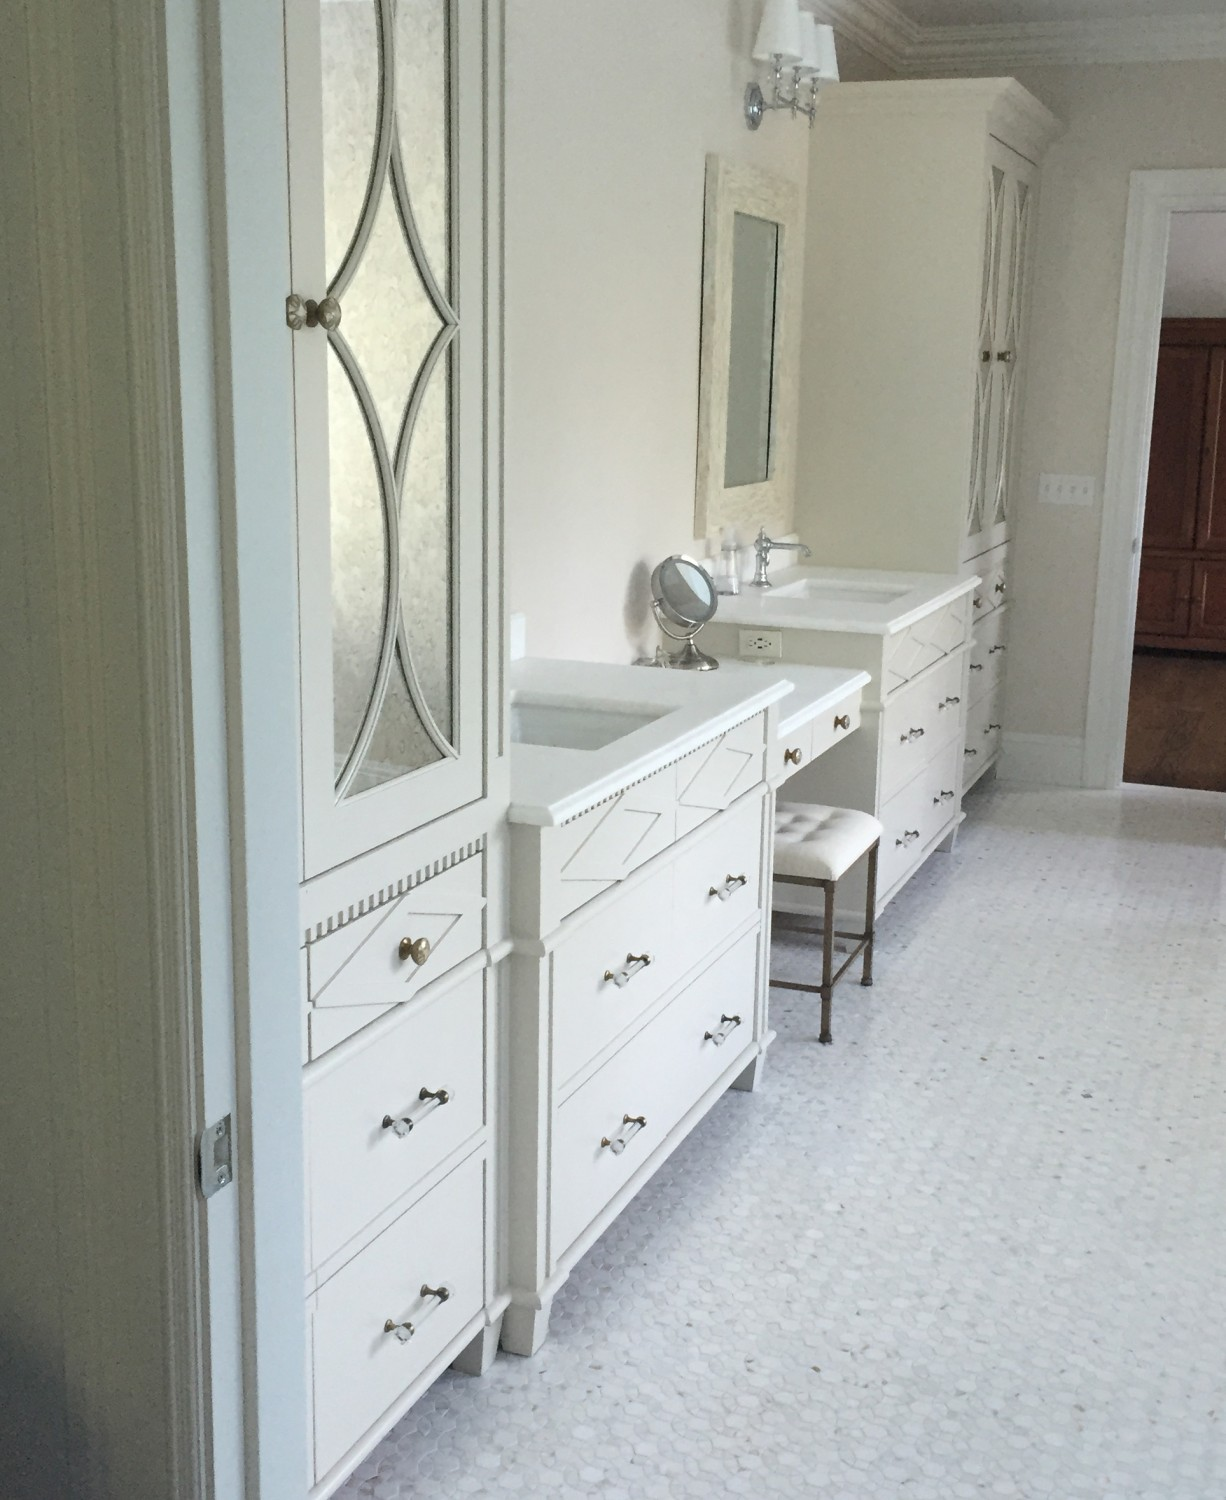 Bathroom Remodeling In Ct: Double The Pleasure ⋆ Liesegang Building & Remodeling